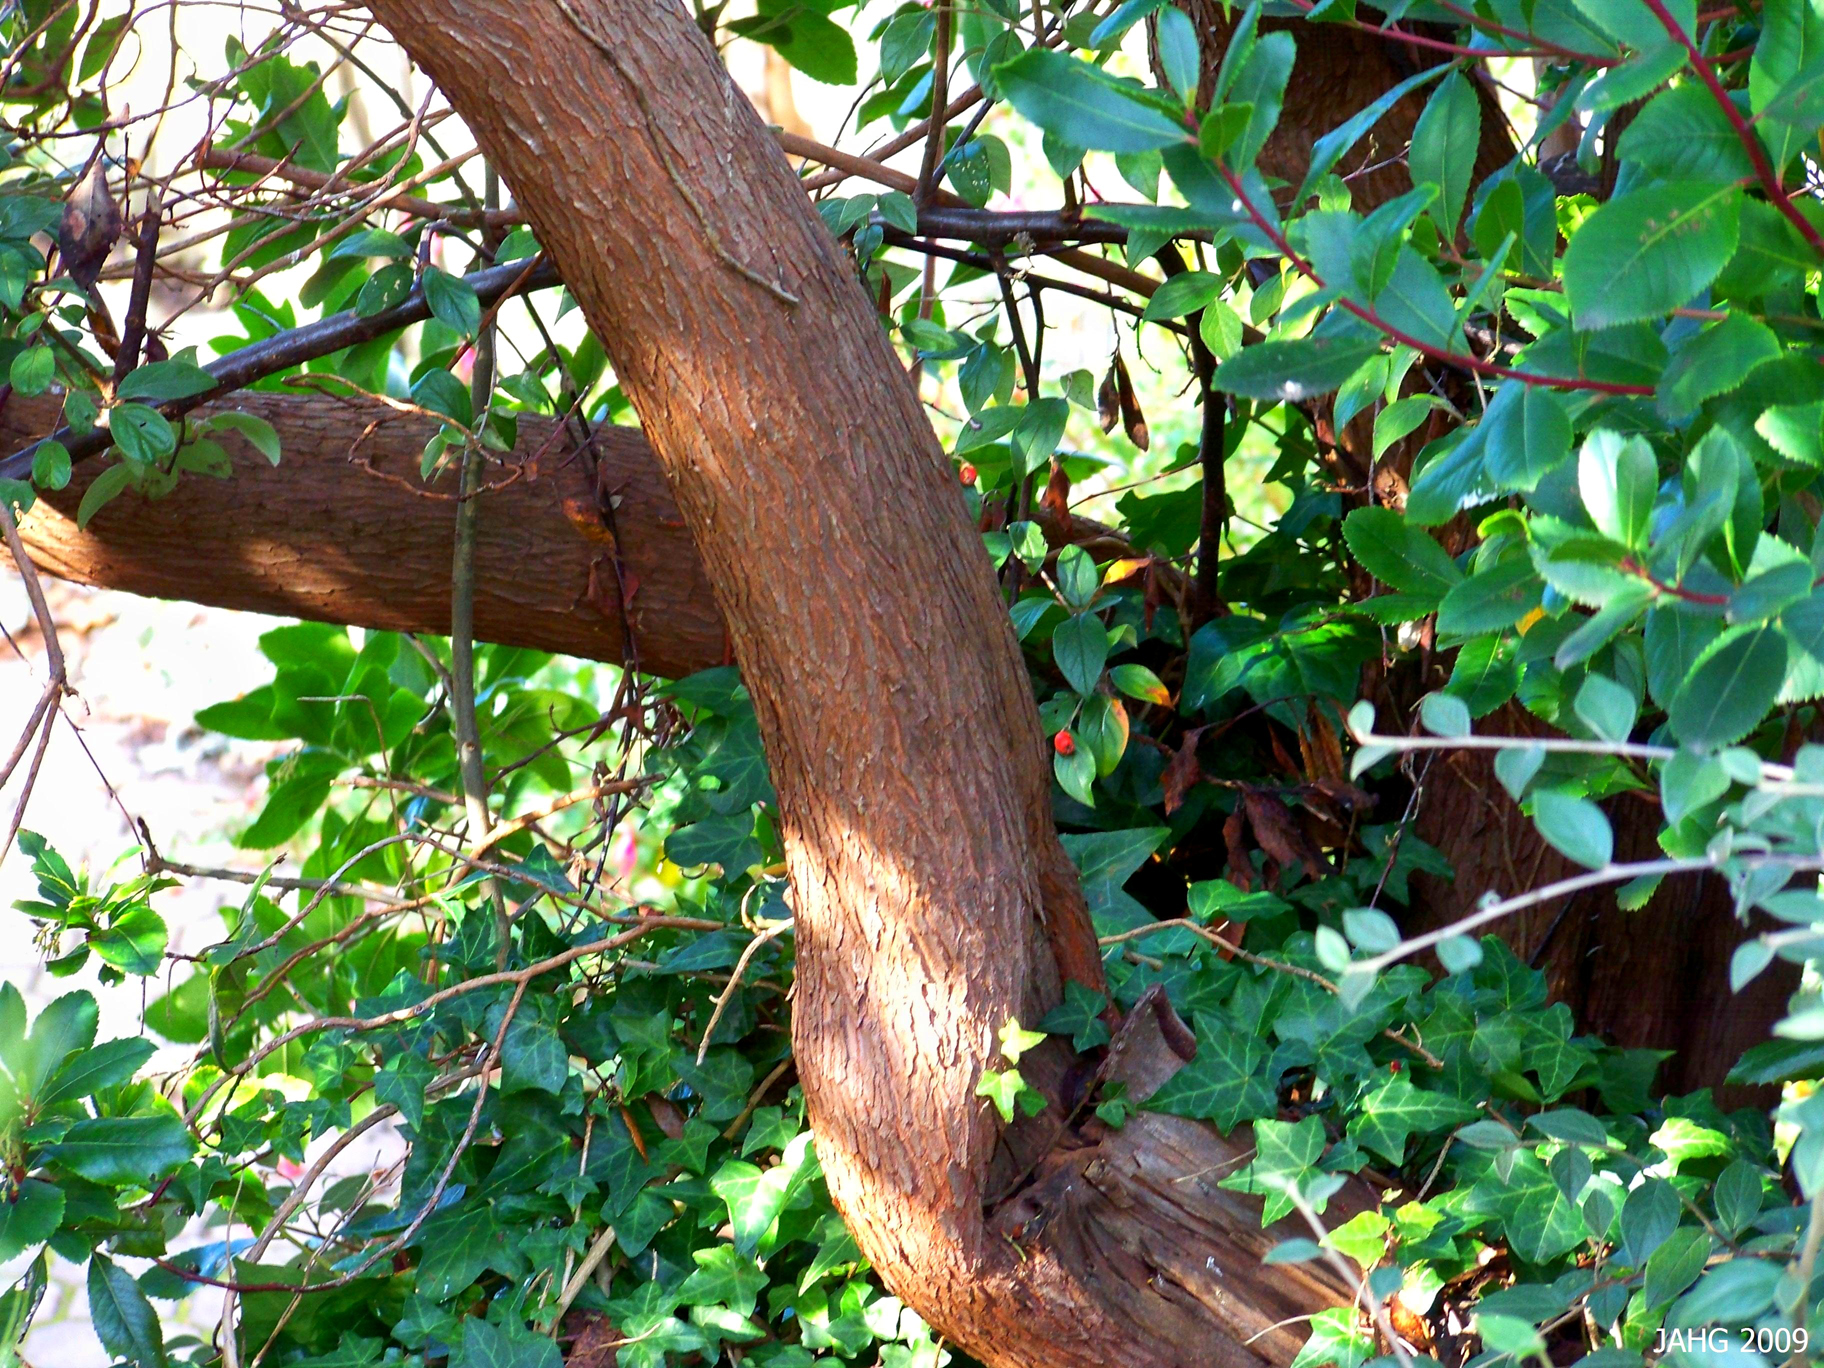 Strawberry-tree-trunk-and-leaves